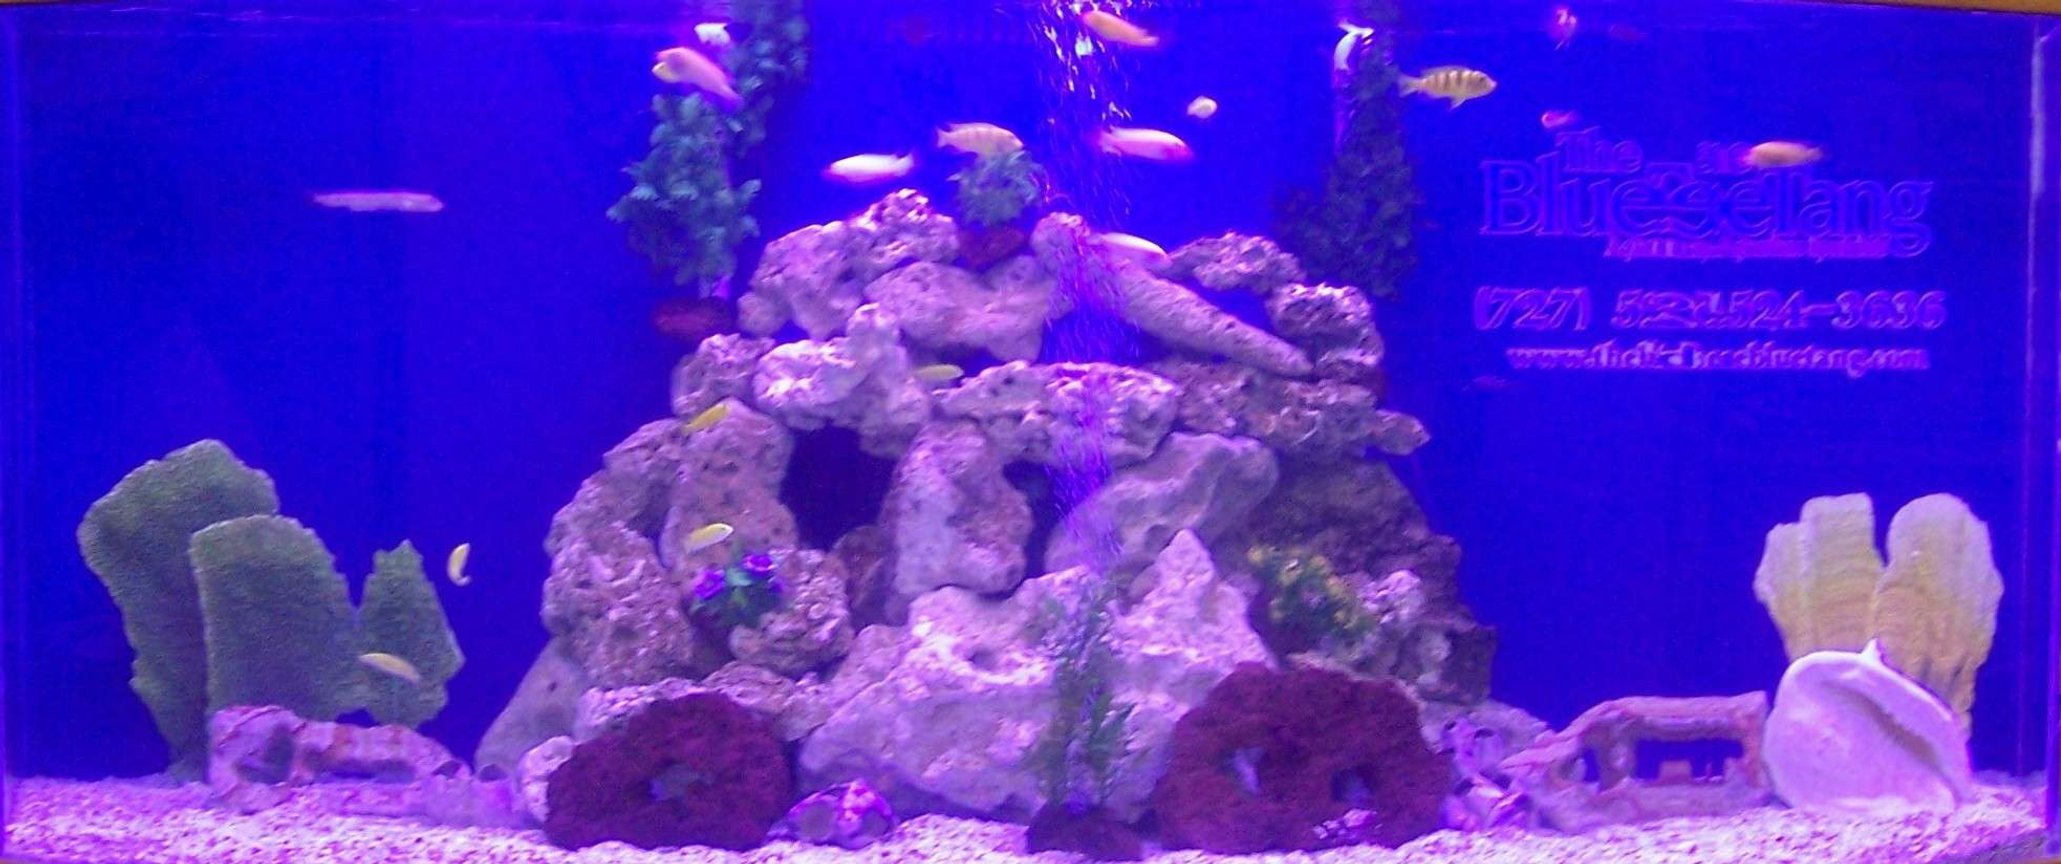 fish tank picture - Our 500 gallon tank